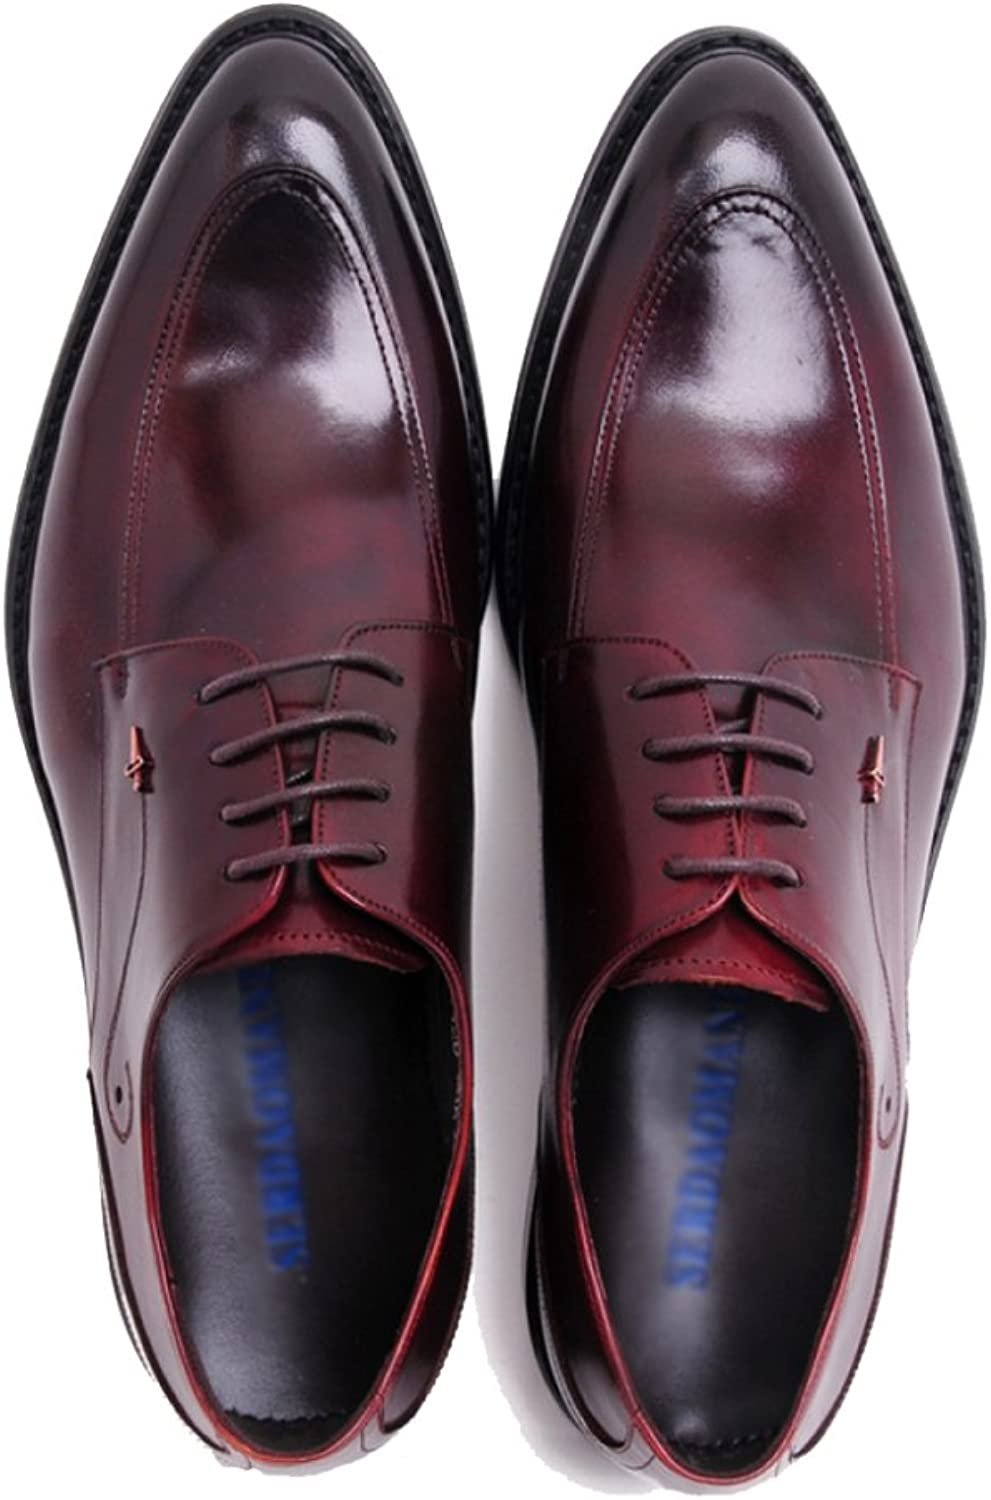 SHANHEYY Men's Pointed-Toe Brogues Formal Oxford Genuine Leather Wedding shoes Derby